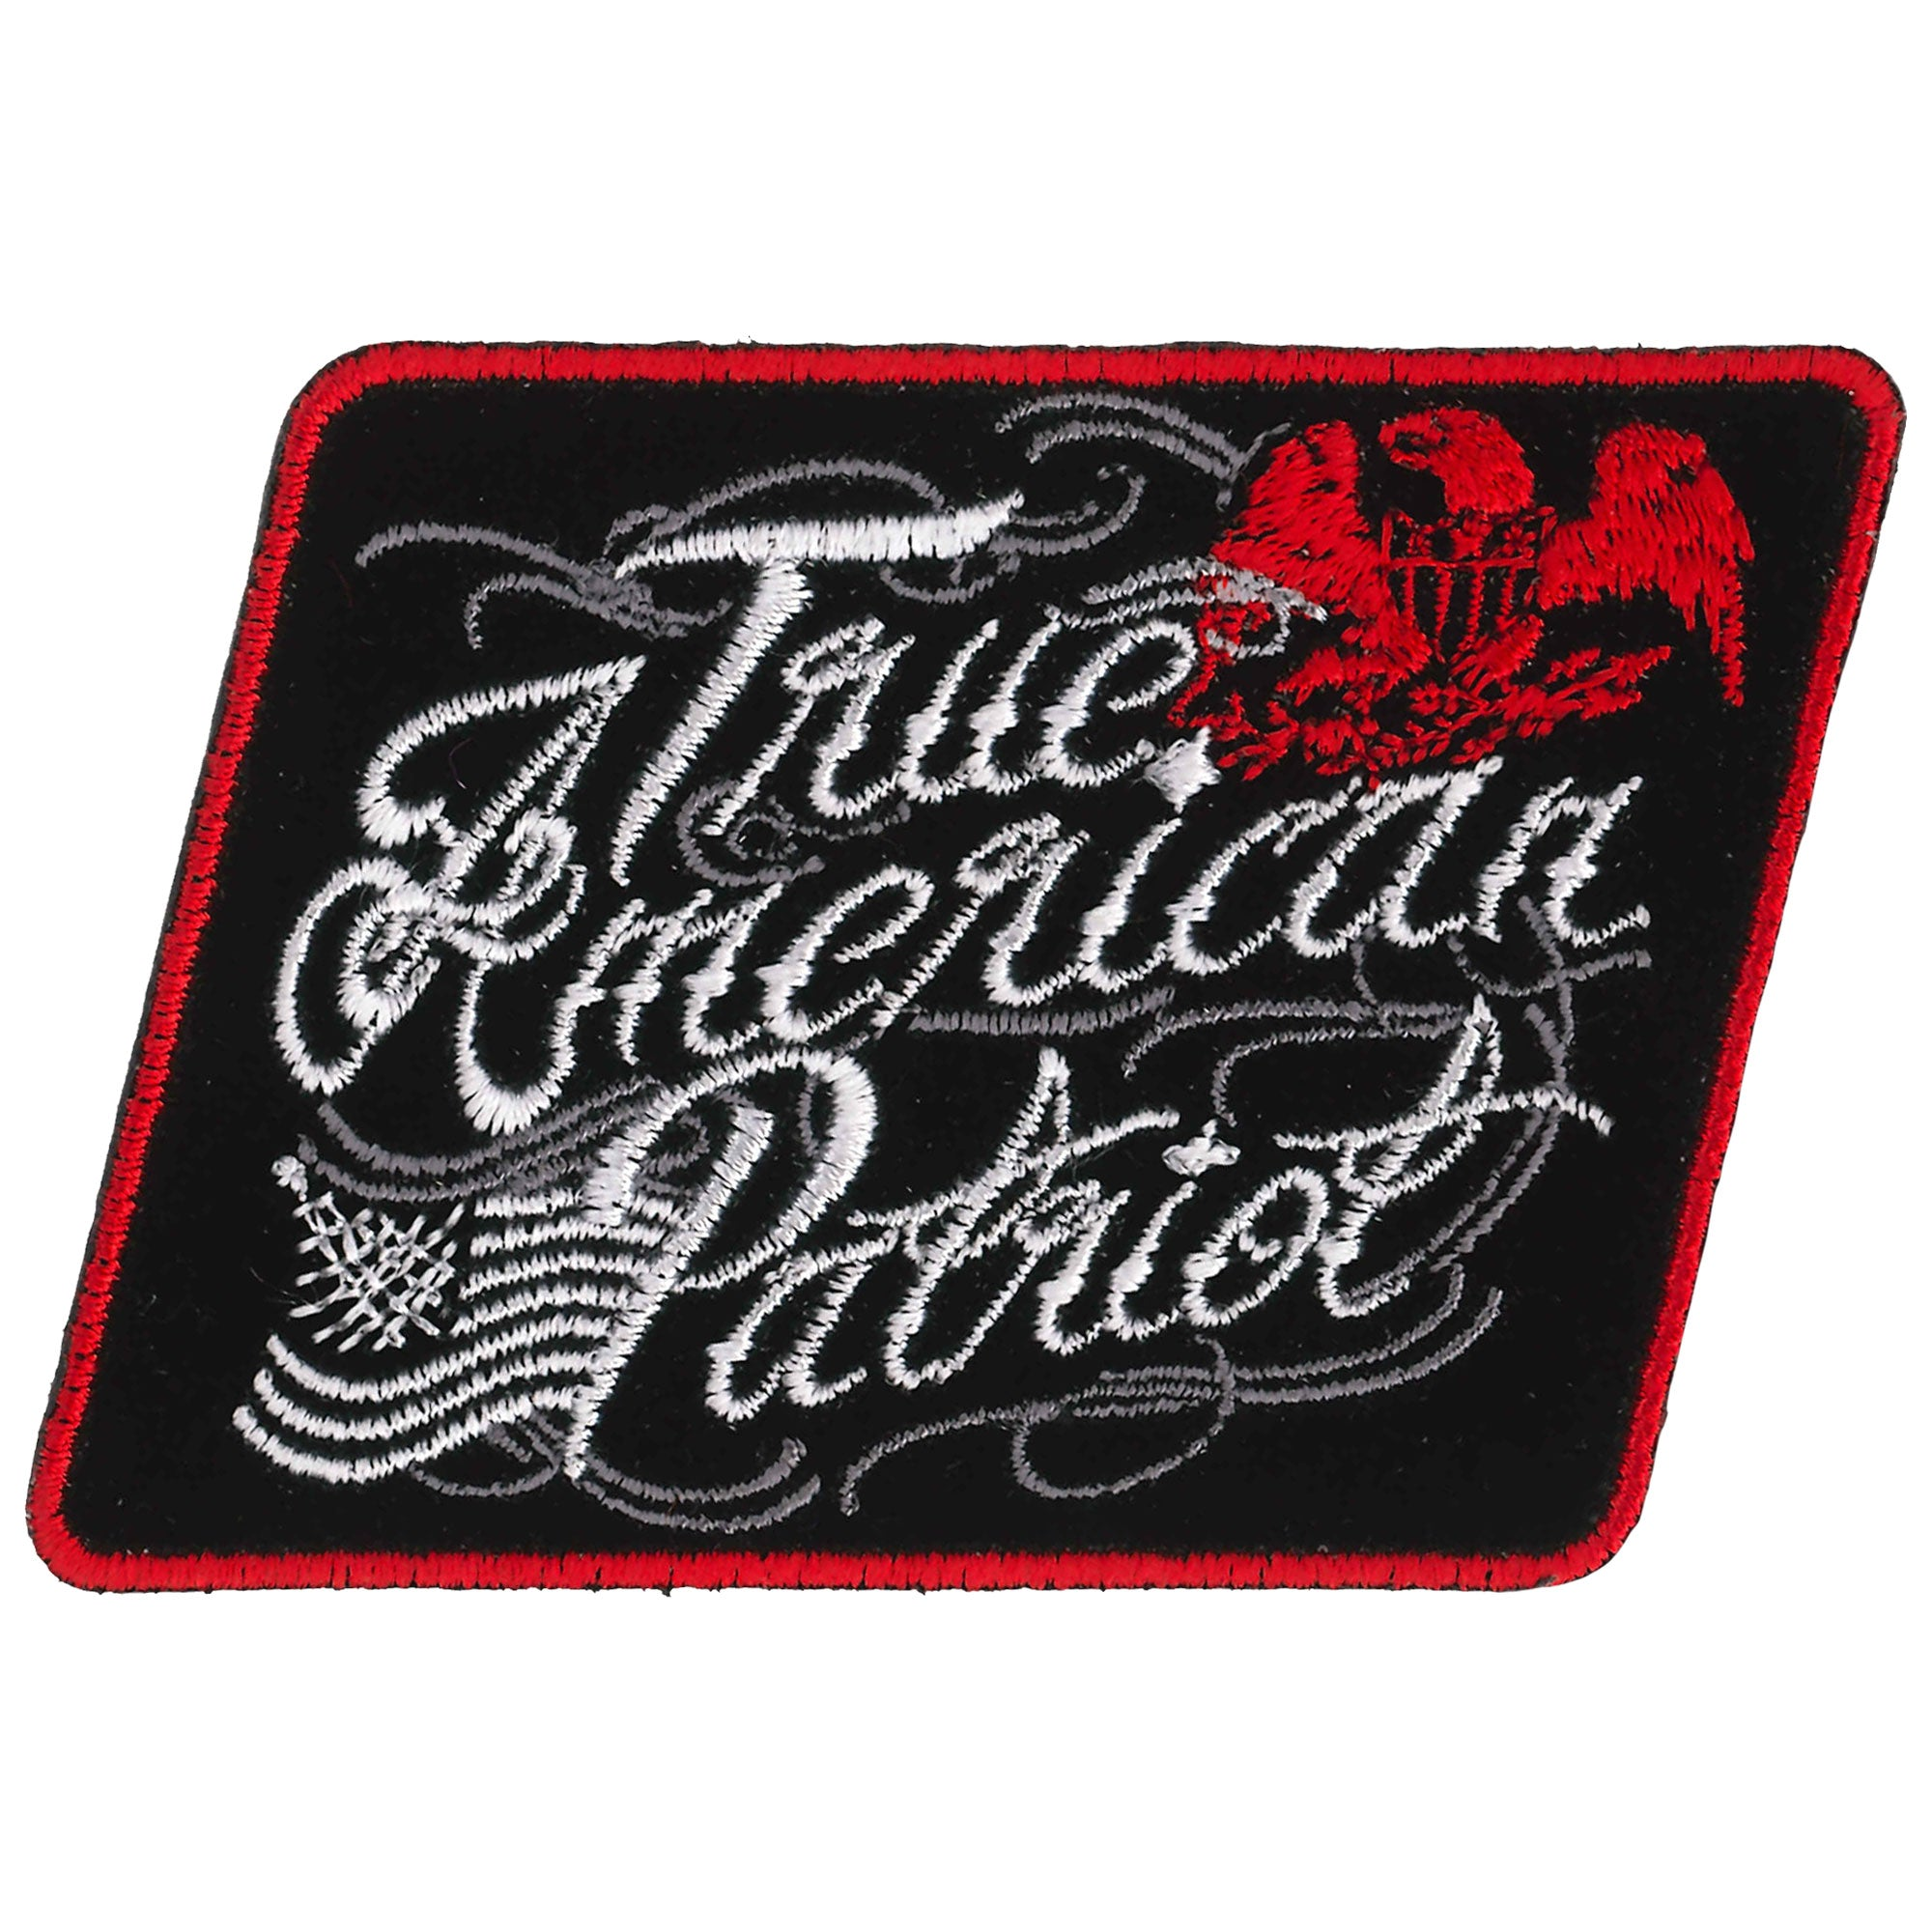 Hot Leathers Patch True American Patriot 3""